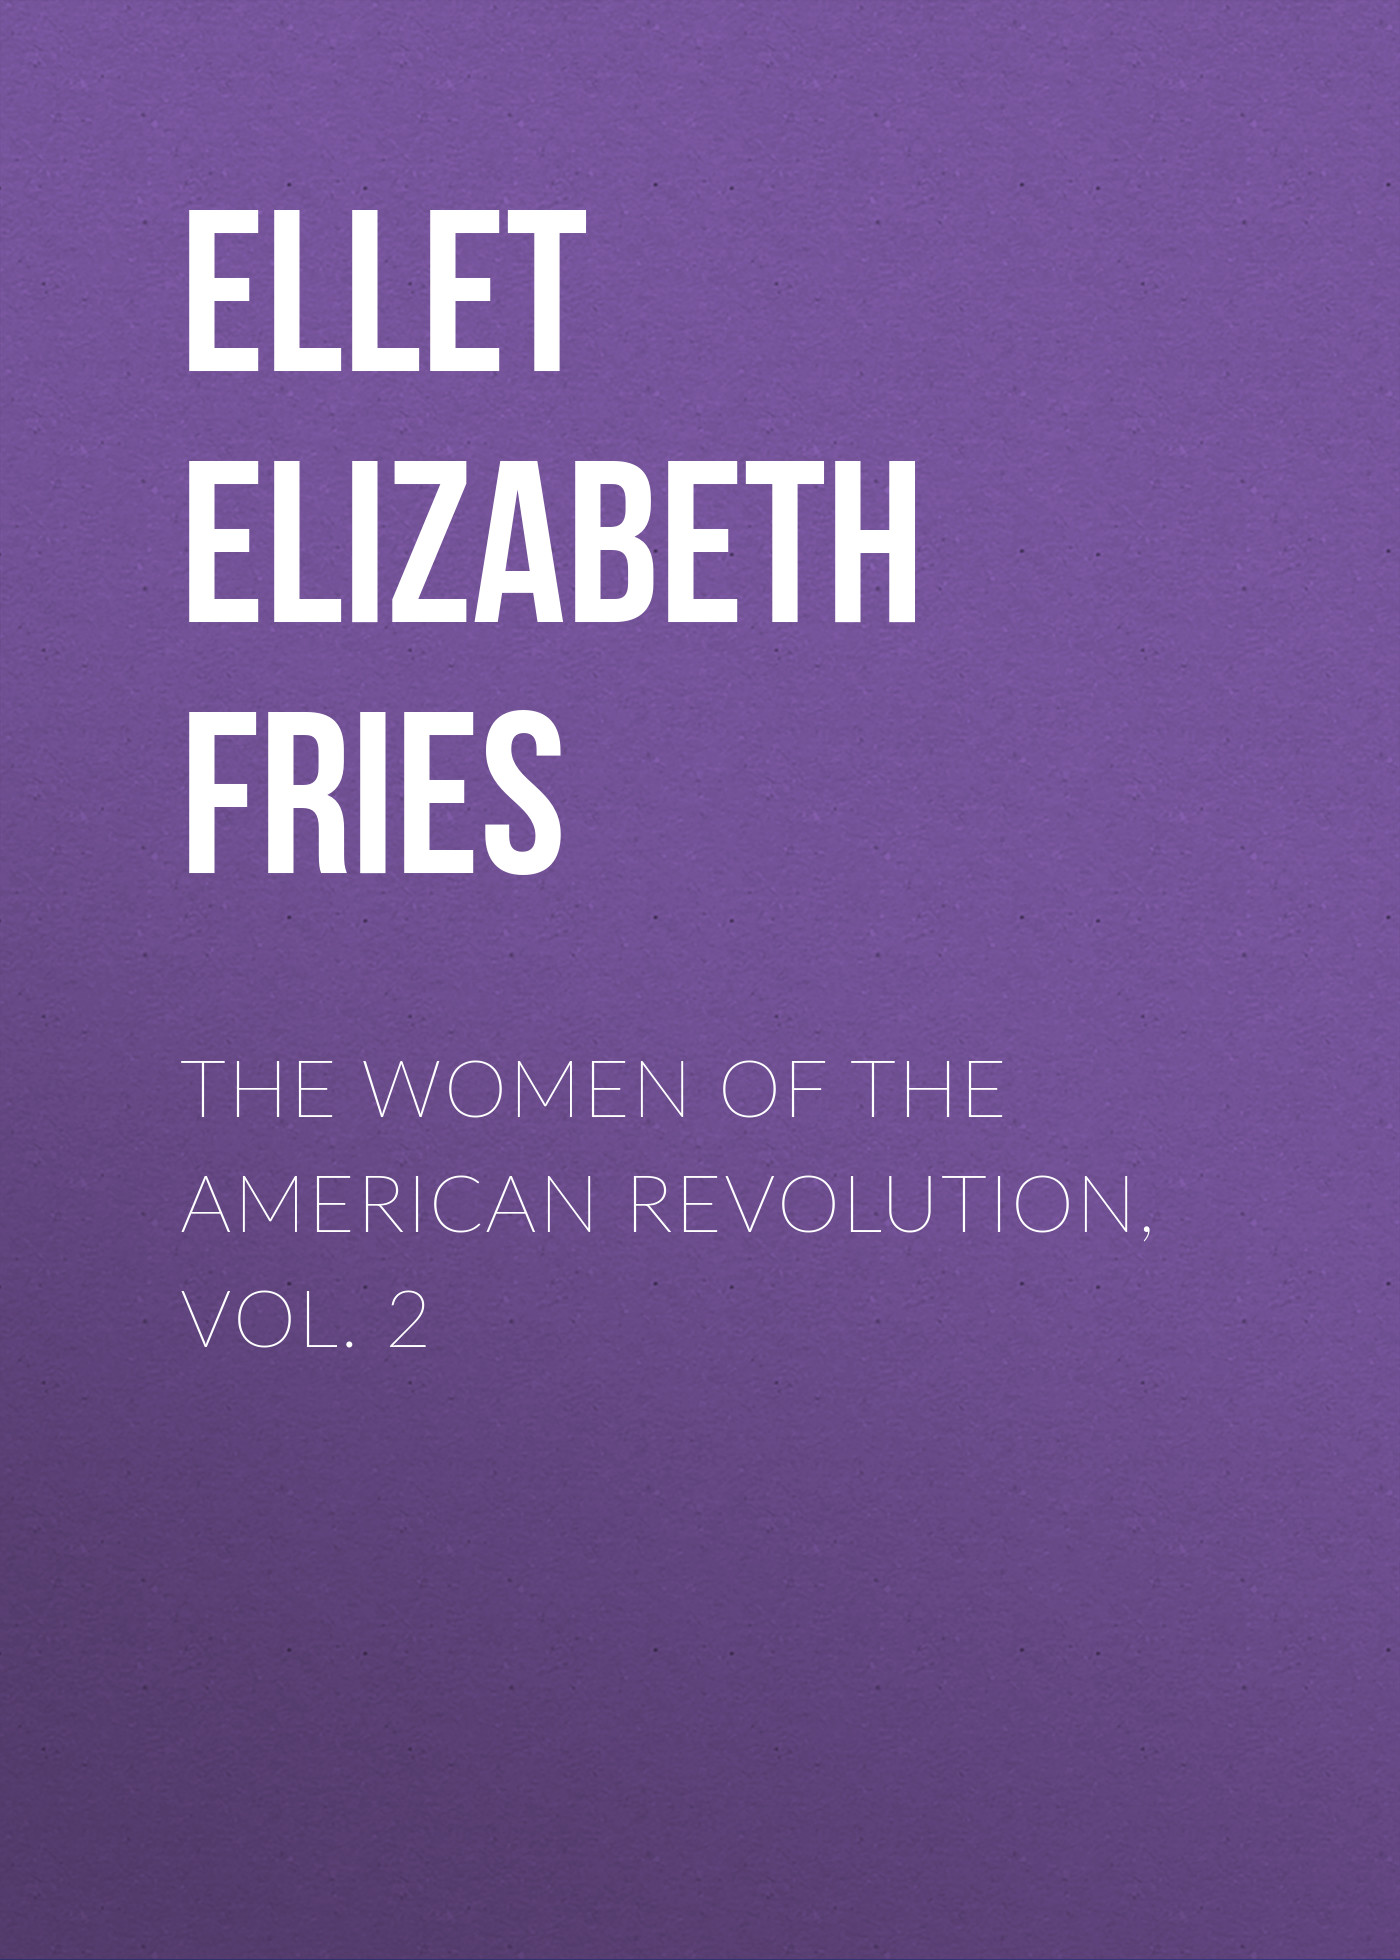 Ellet Elizabeth Fries The Women of The American Revolution, Vol. 2